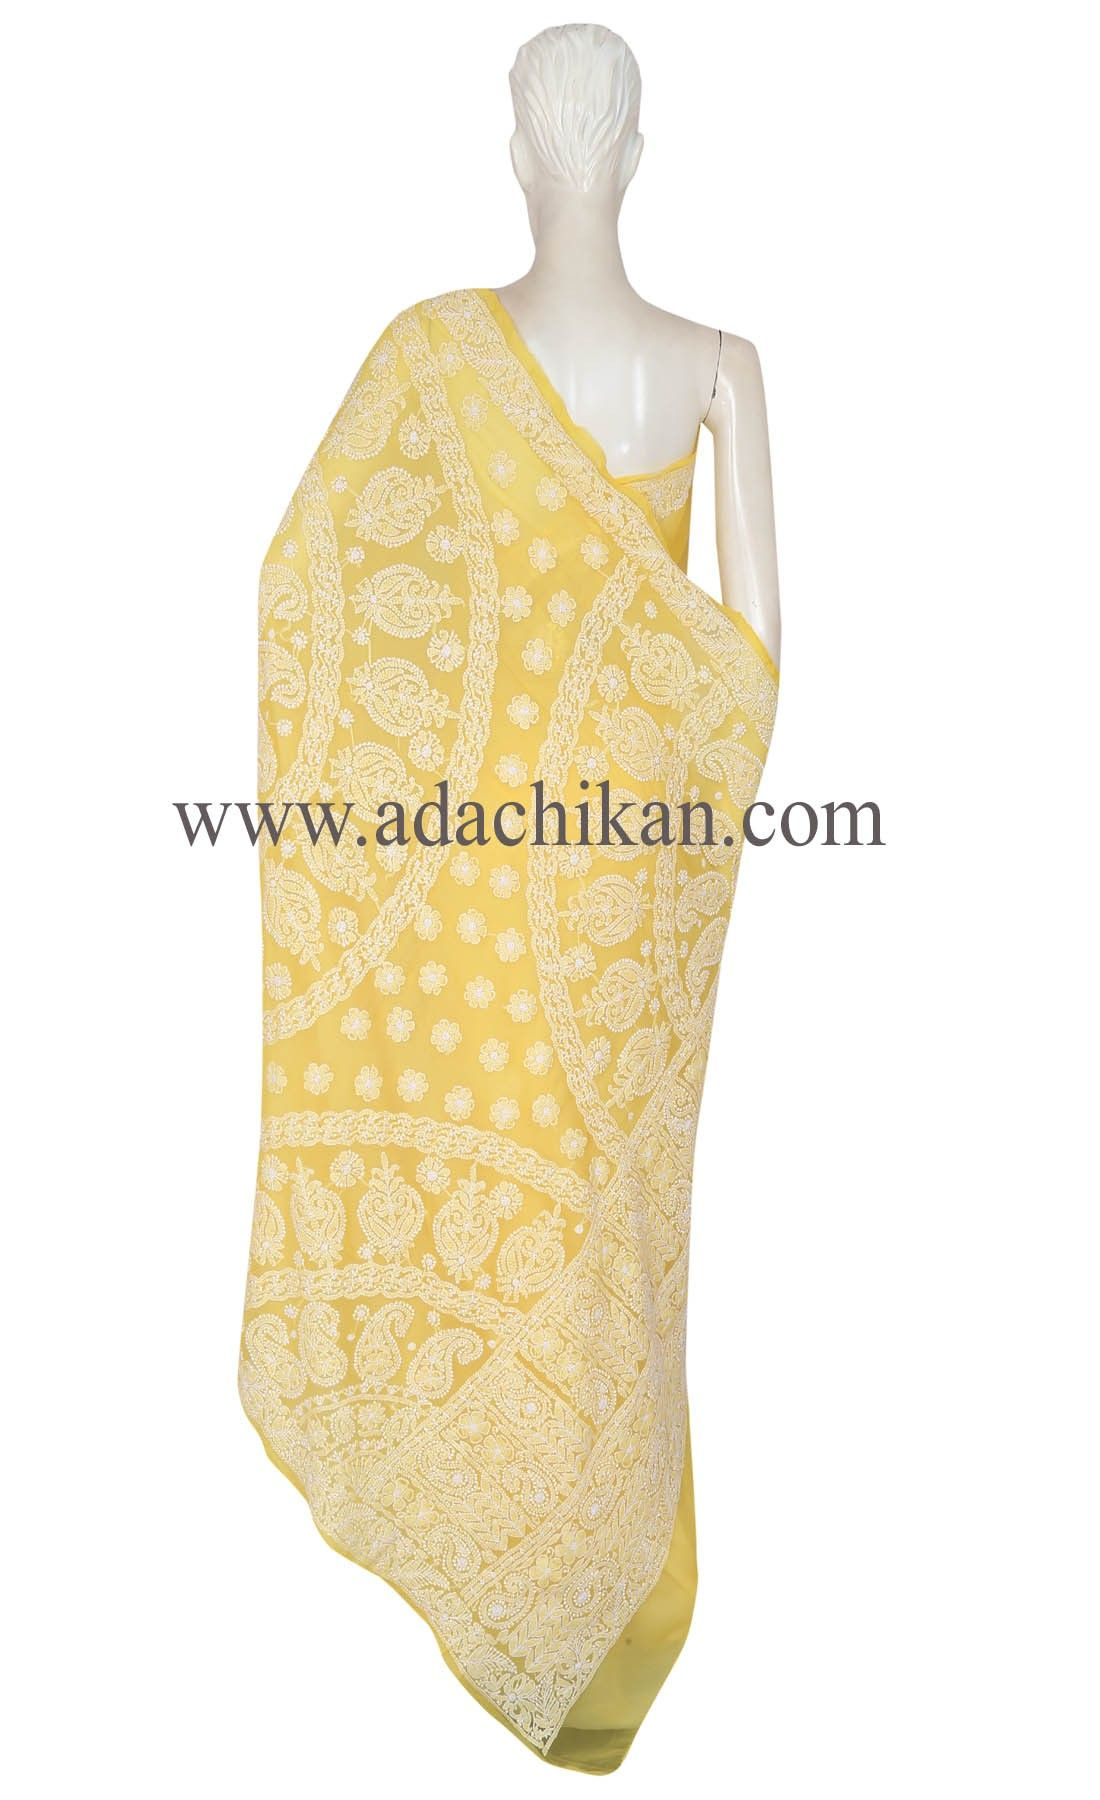 Ada Hand Embroidered Yellow Faux Georgette Lucknow Chikan Saree With Blouse- A193202 - Women Chikan Wear